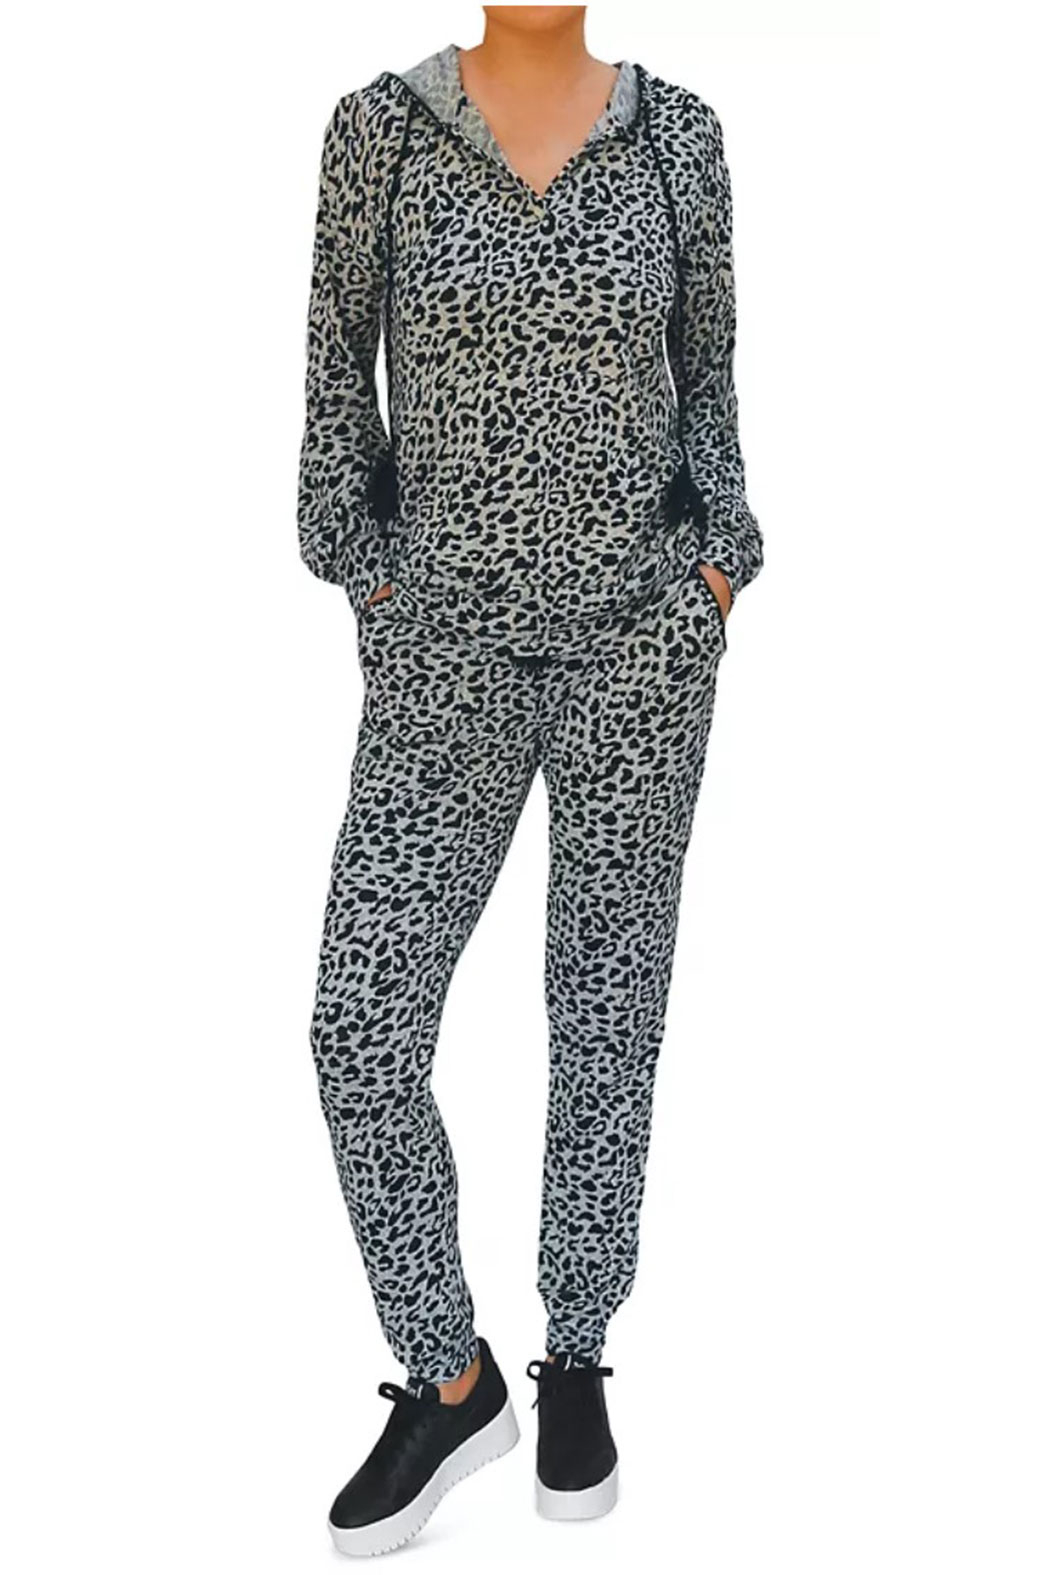 Billy T Leopard Print Hoodie - Side Cropped Image